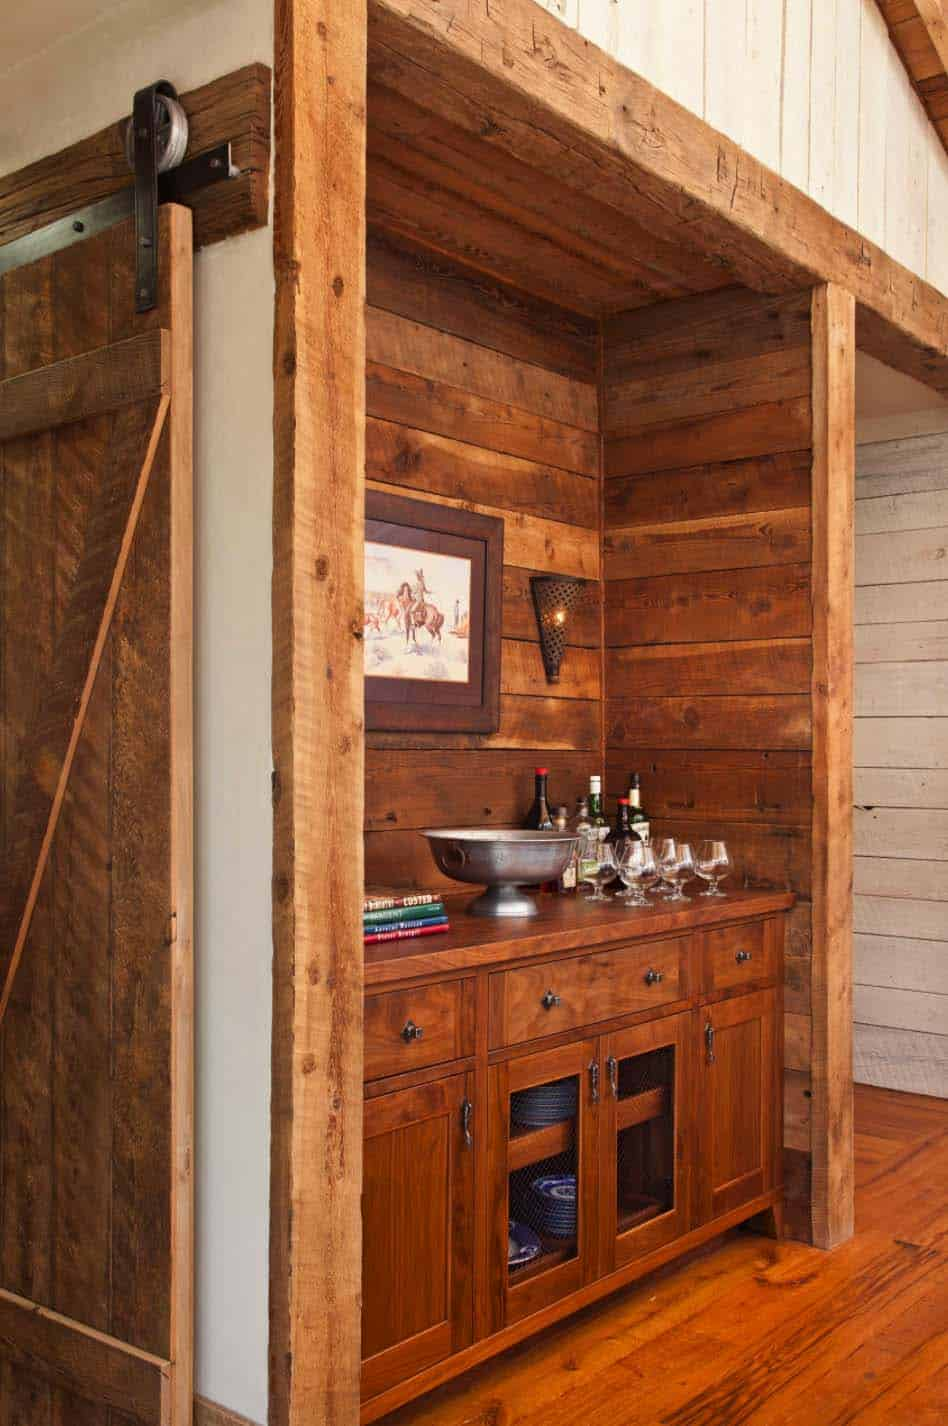 Rustic Mountain Retreat-Miller Roodell Architects-06-1 Kindesign